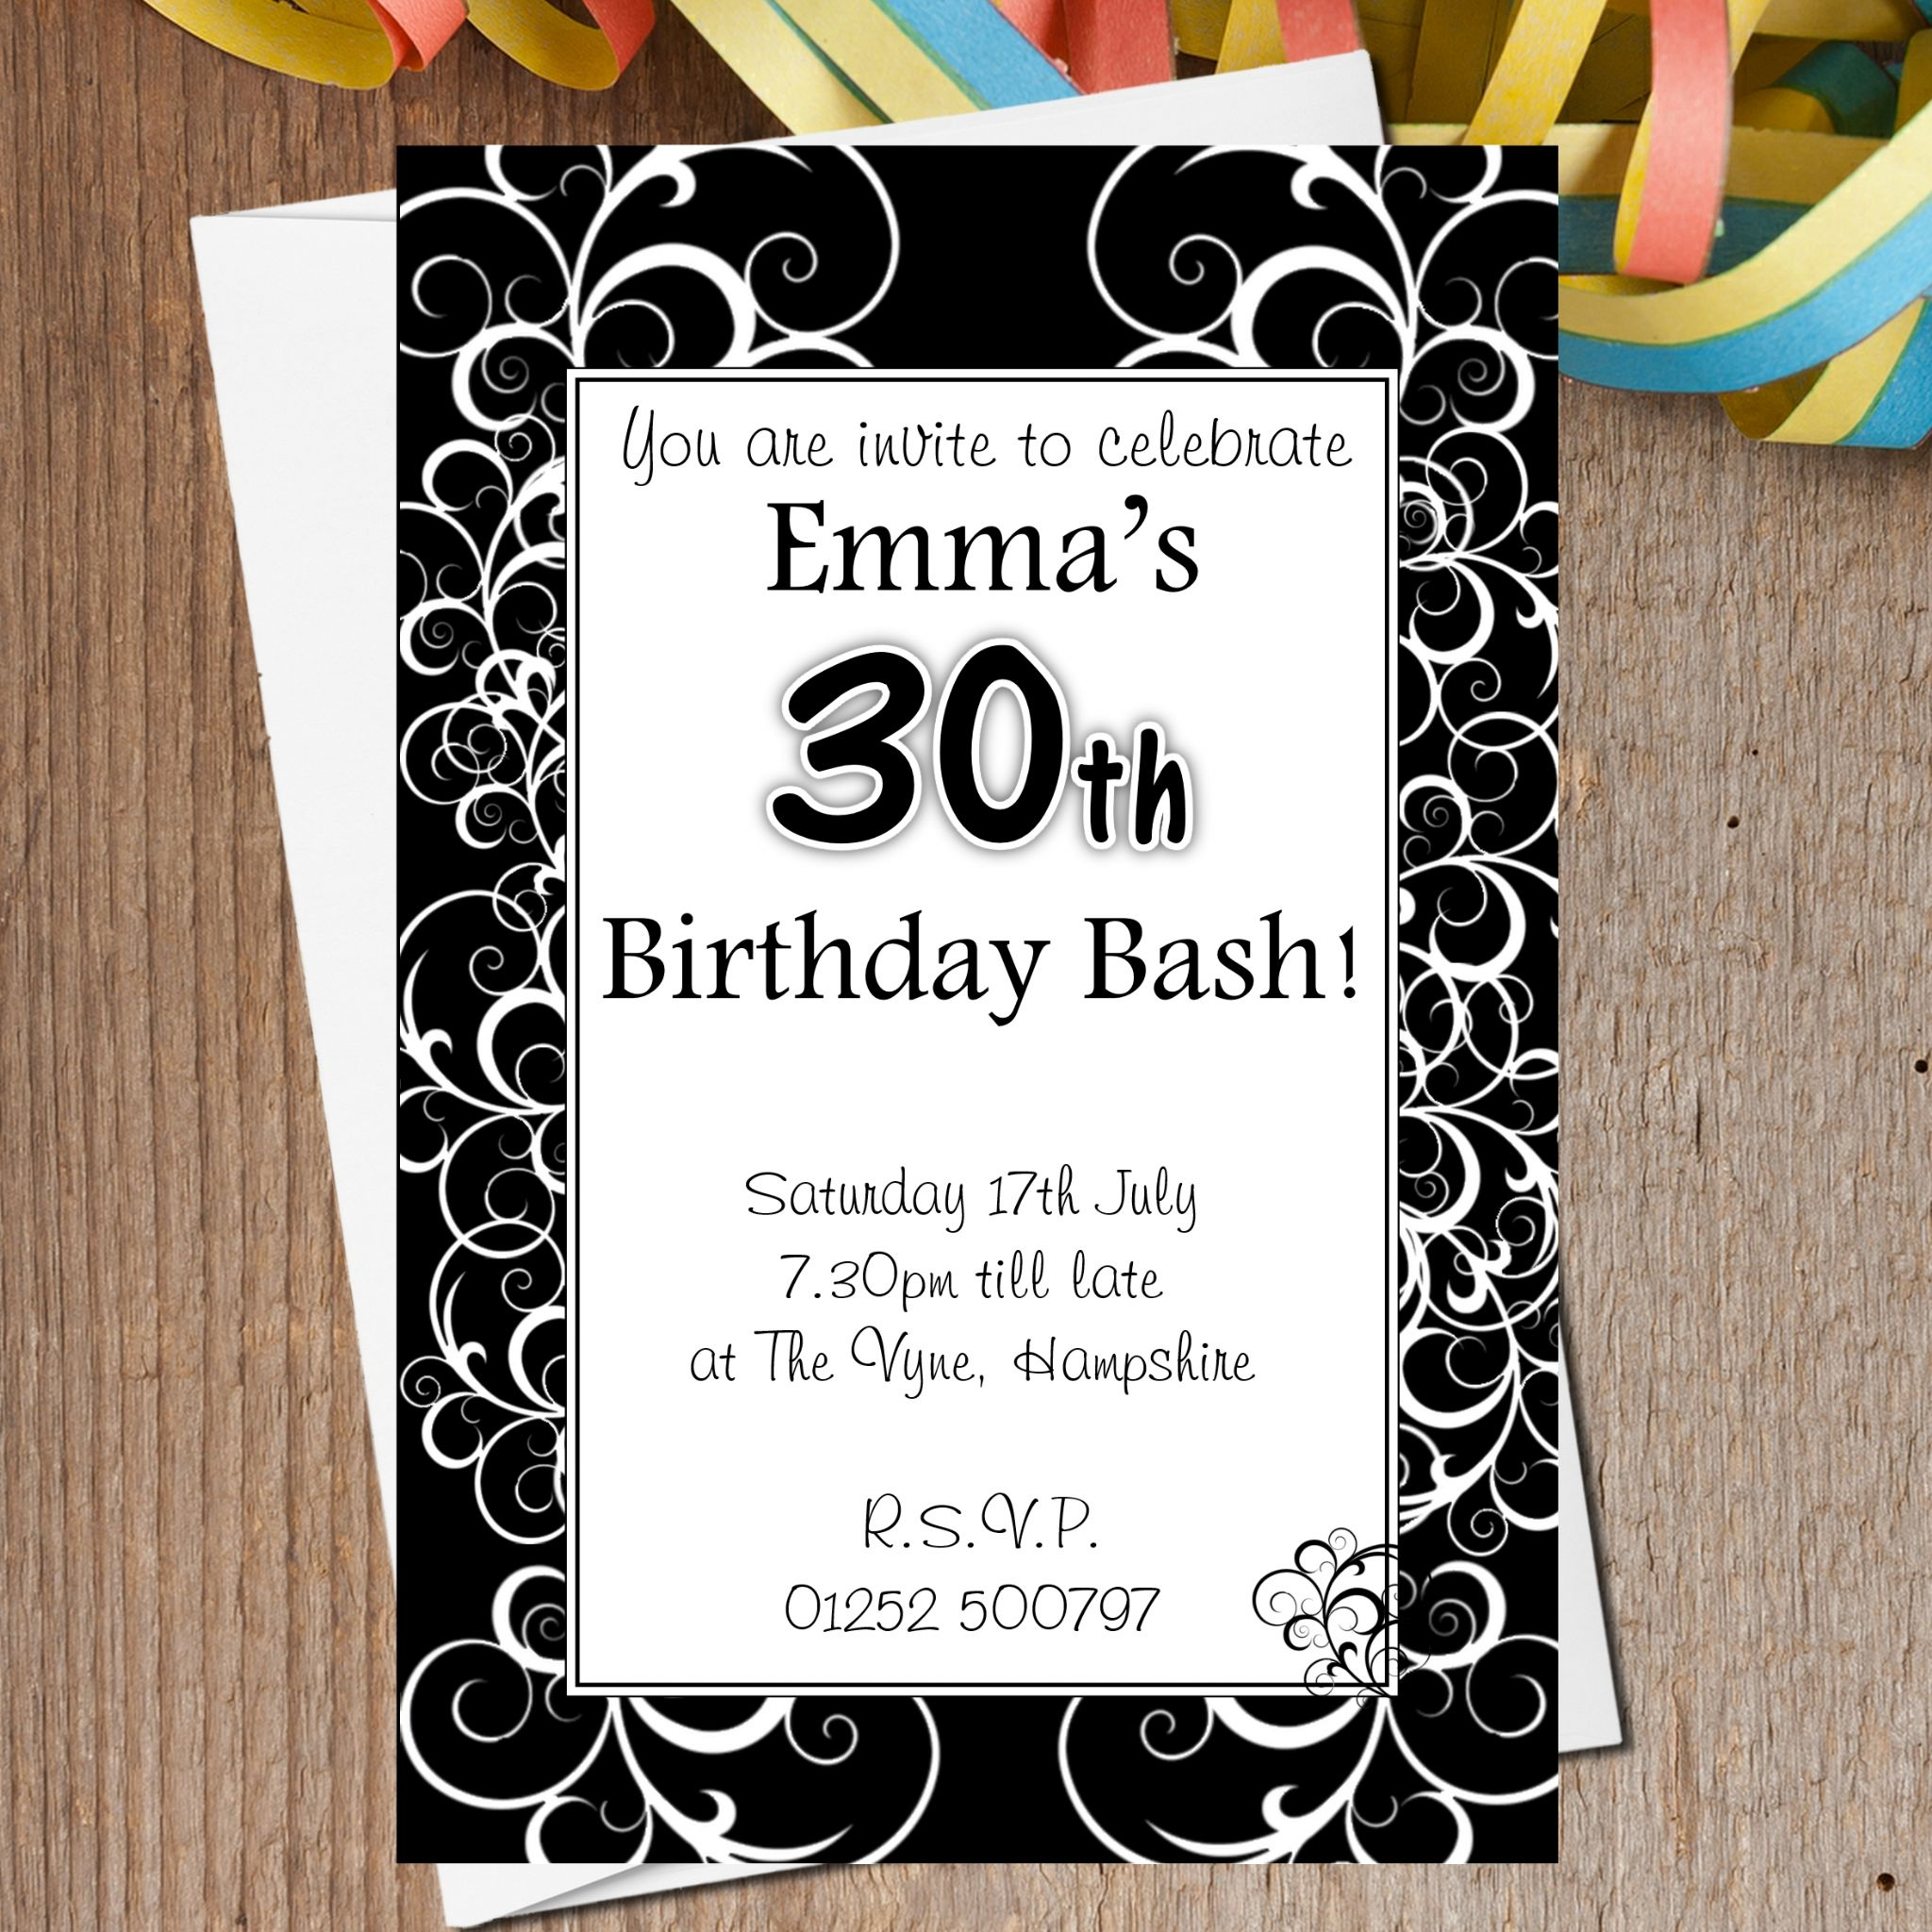 50Th Anniversary Invitations Templates as amazing invitations design